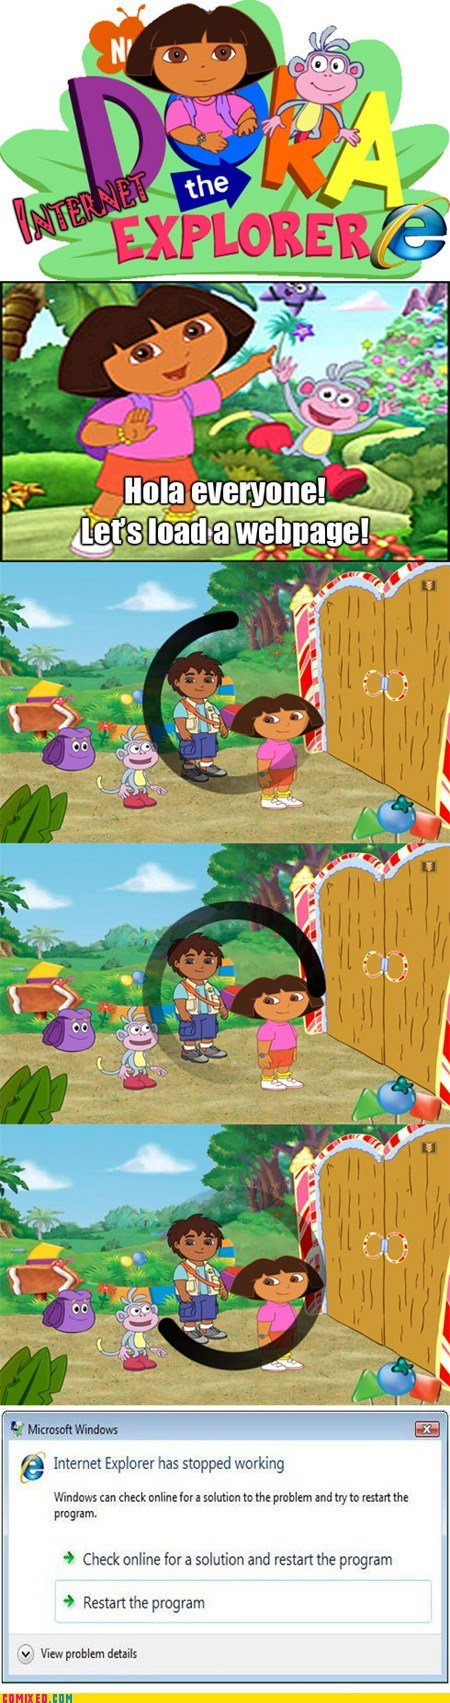 TV dora the explorer internet explorer - 7121870336